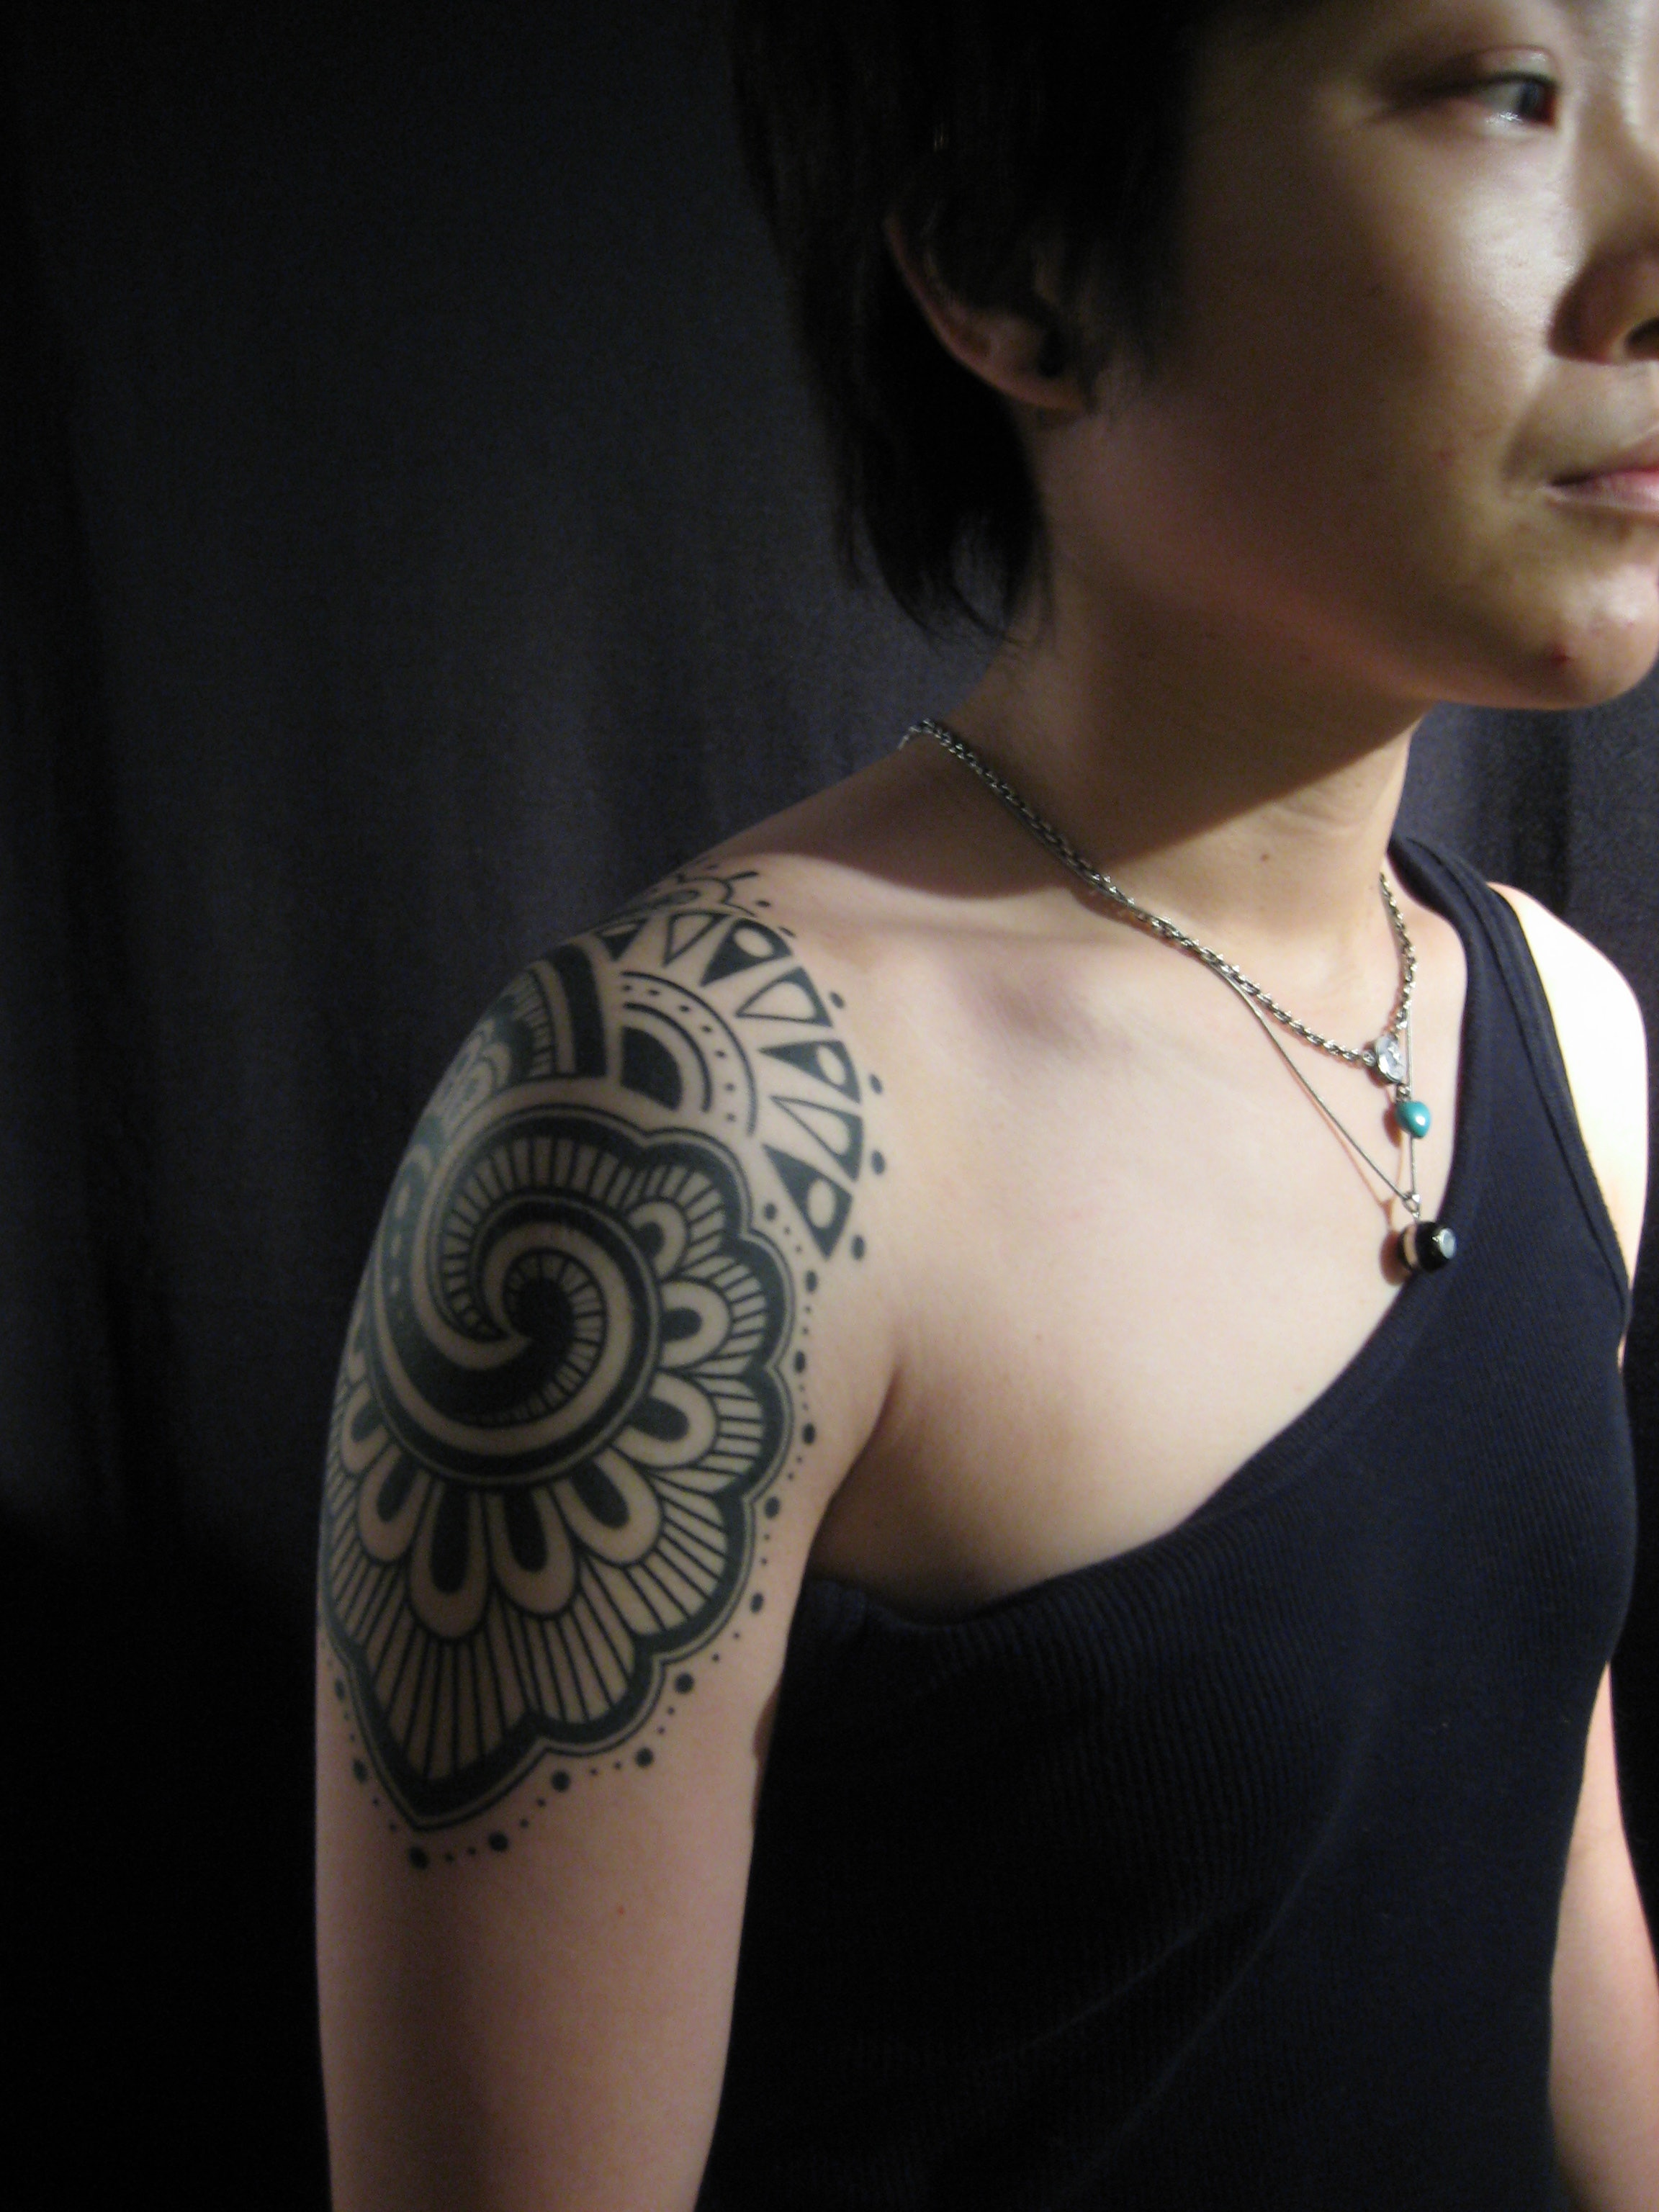 7 Things That Happen To Your Body When You Get A Tattoo